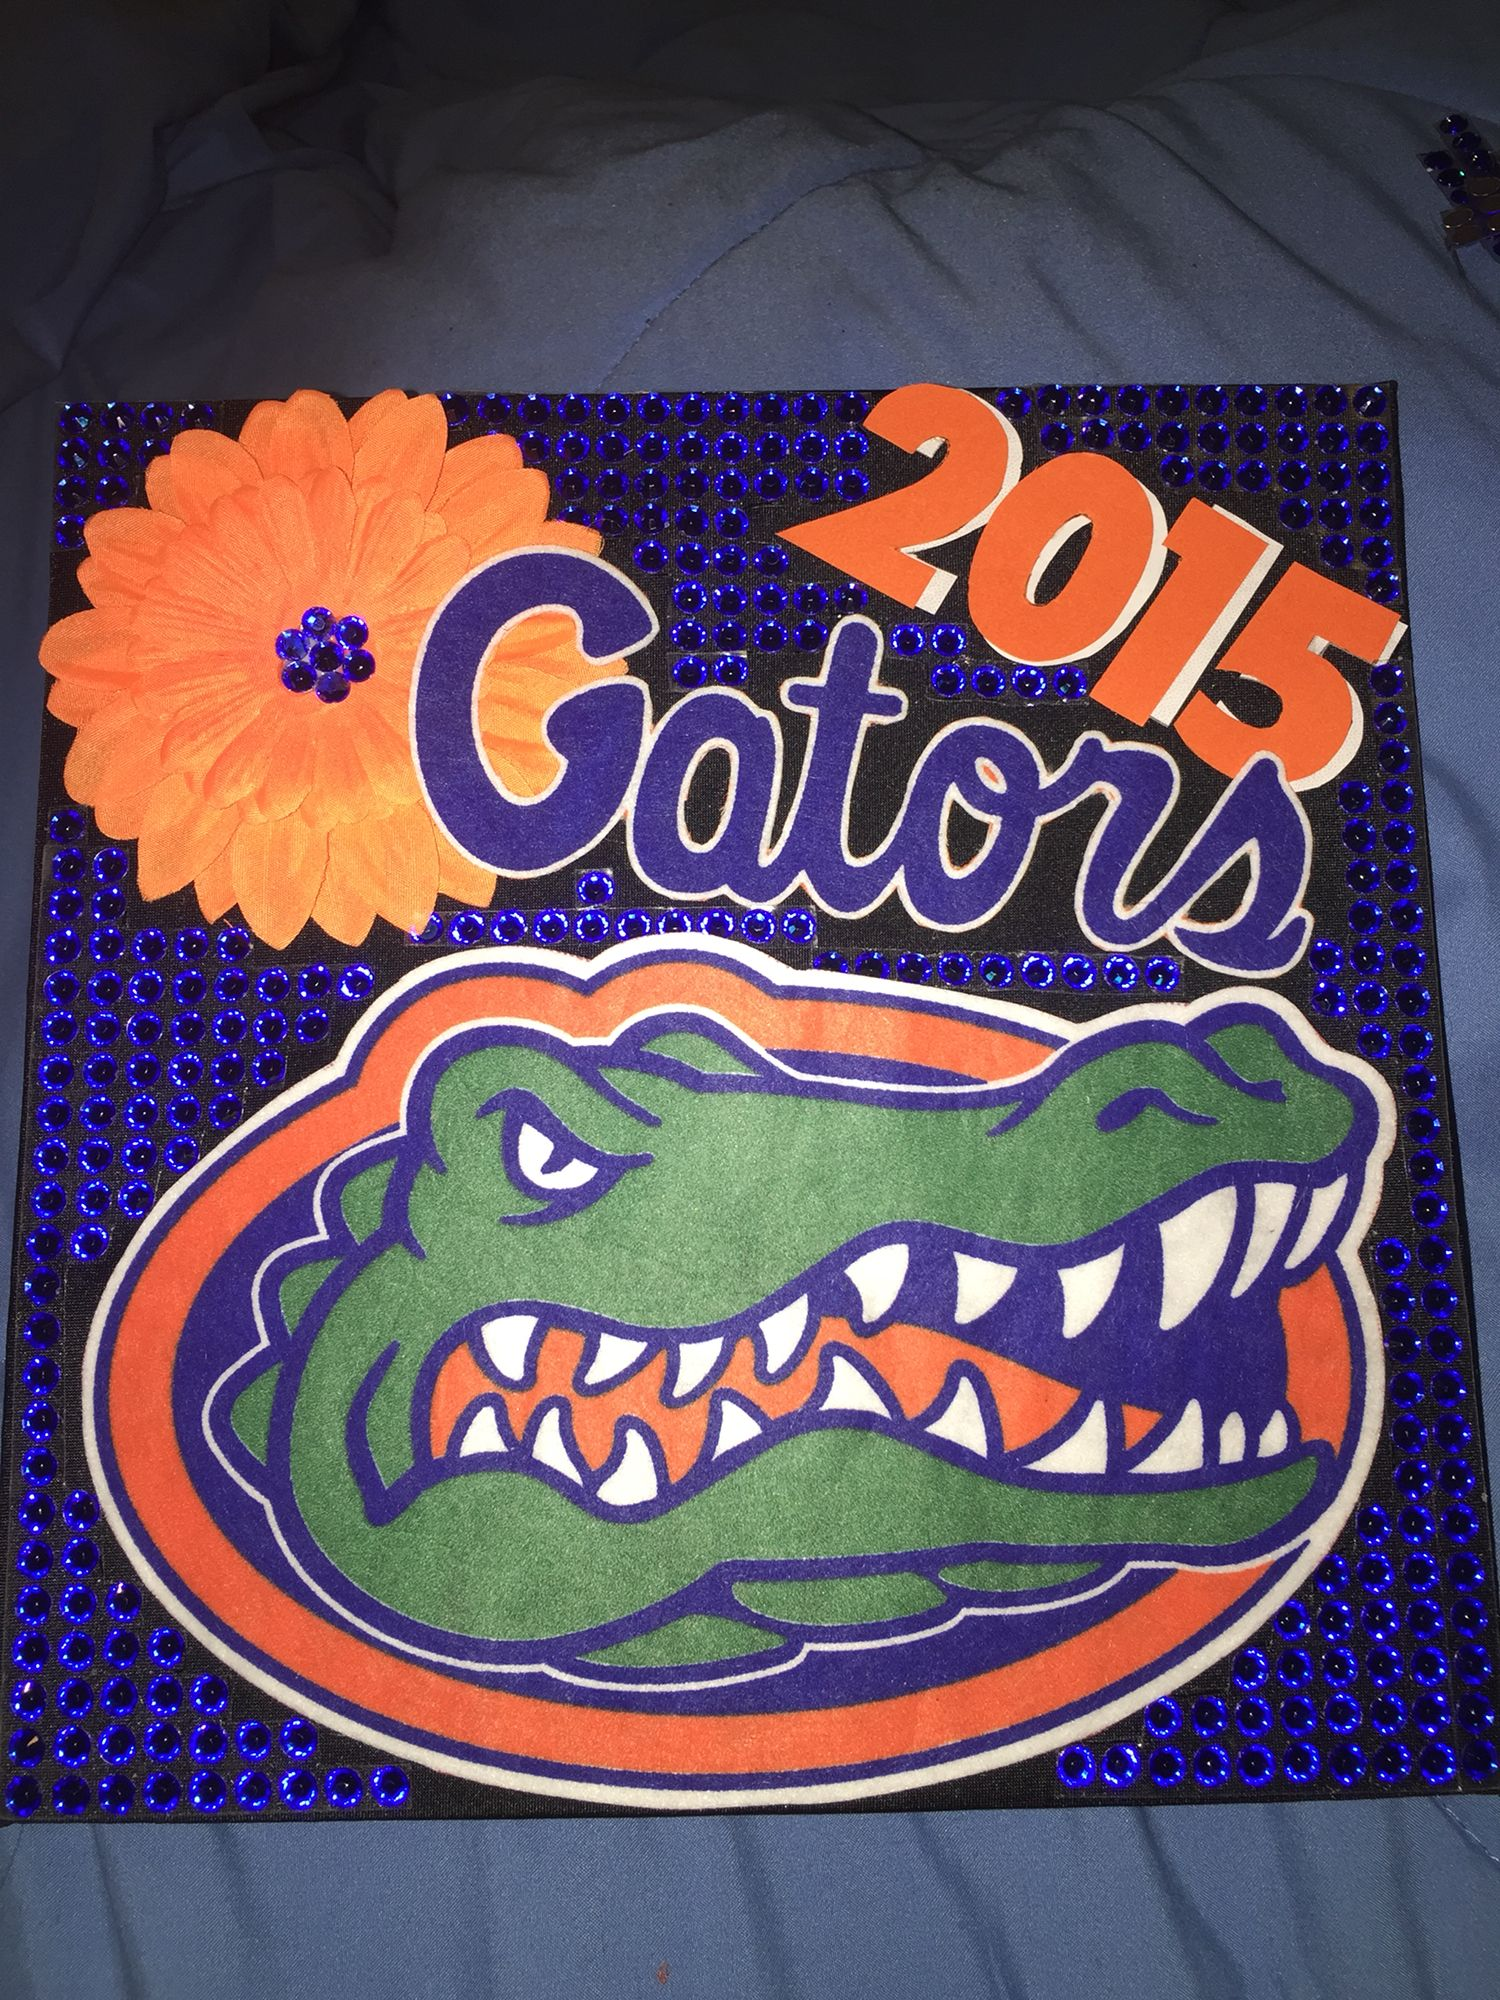 My Graduation Cap For University Of Florida Graduation Uf Gators